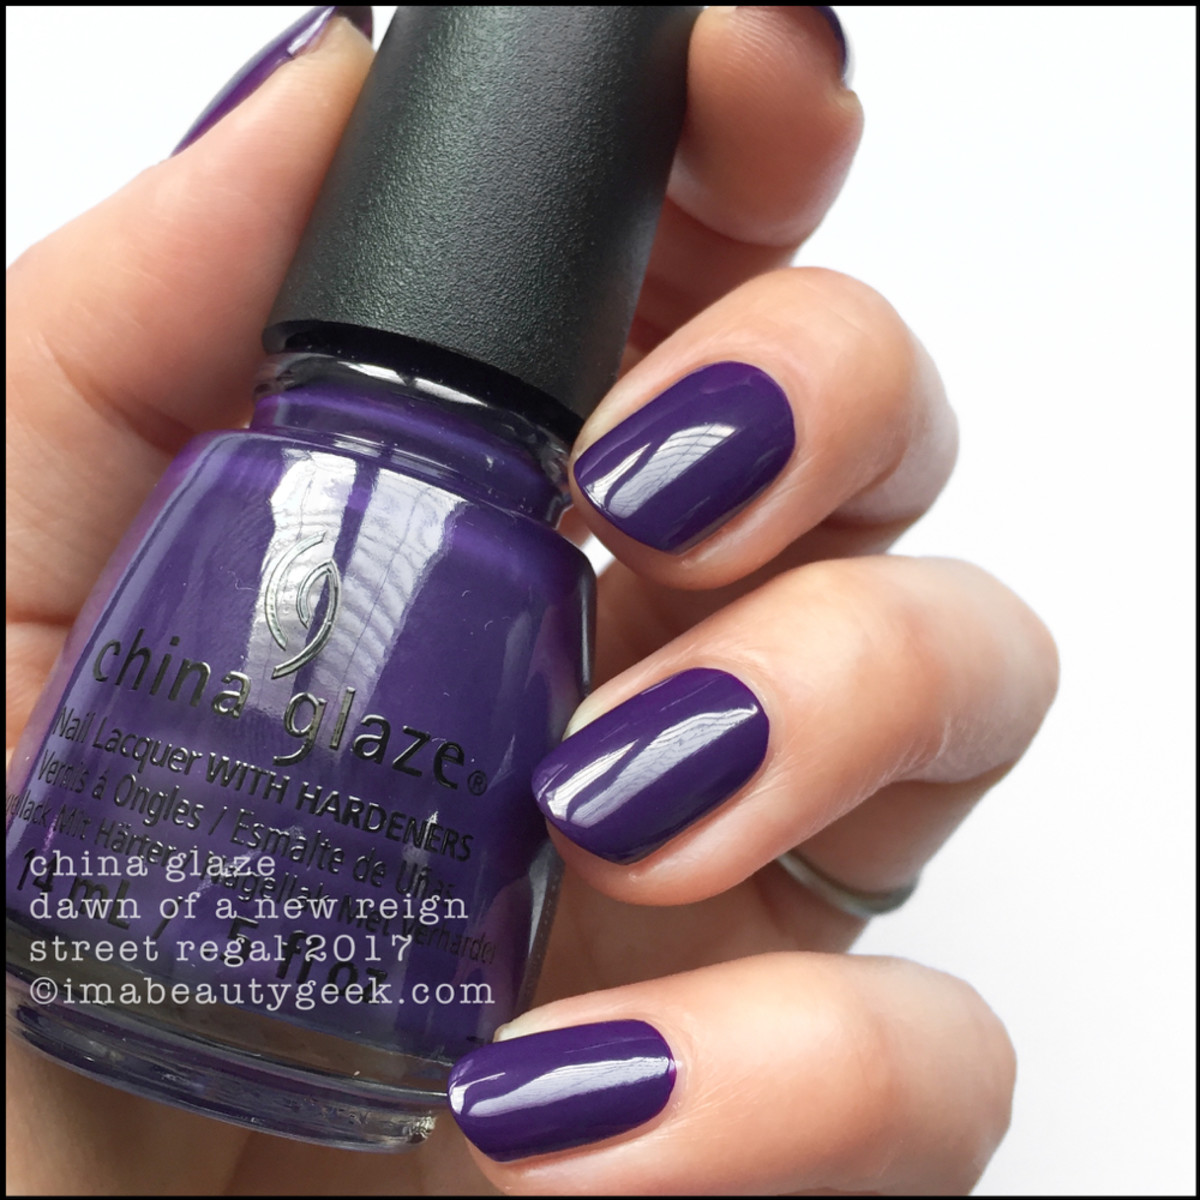 China Glaze Dawn of a New Reign - Street Regal Collection Fall 2017